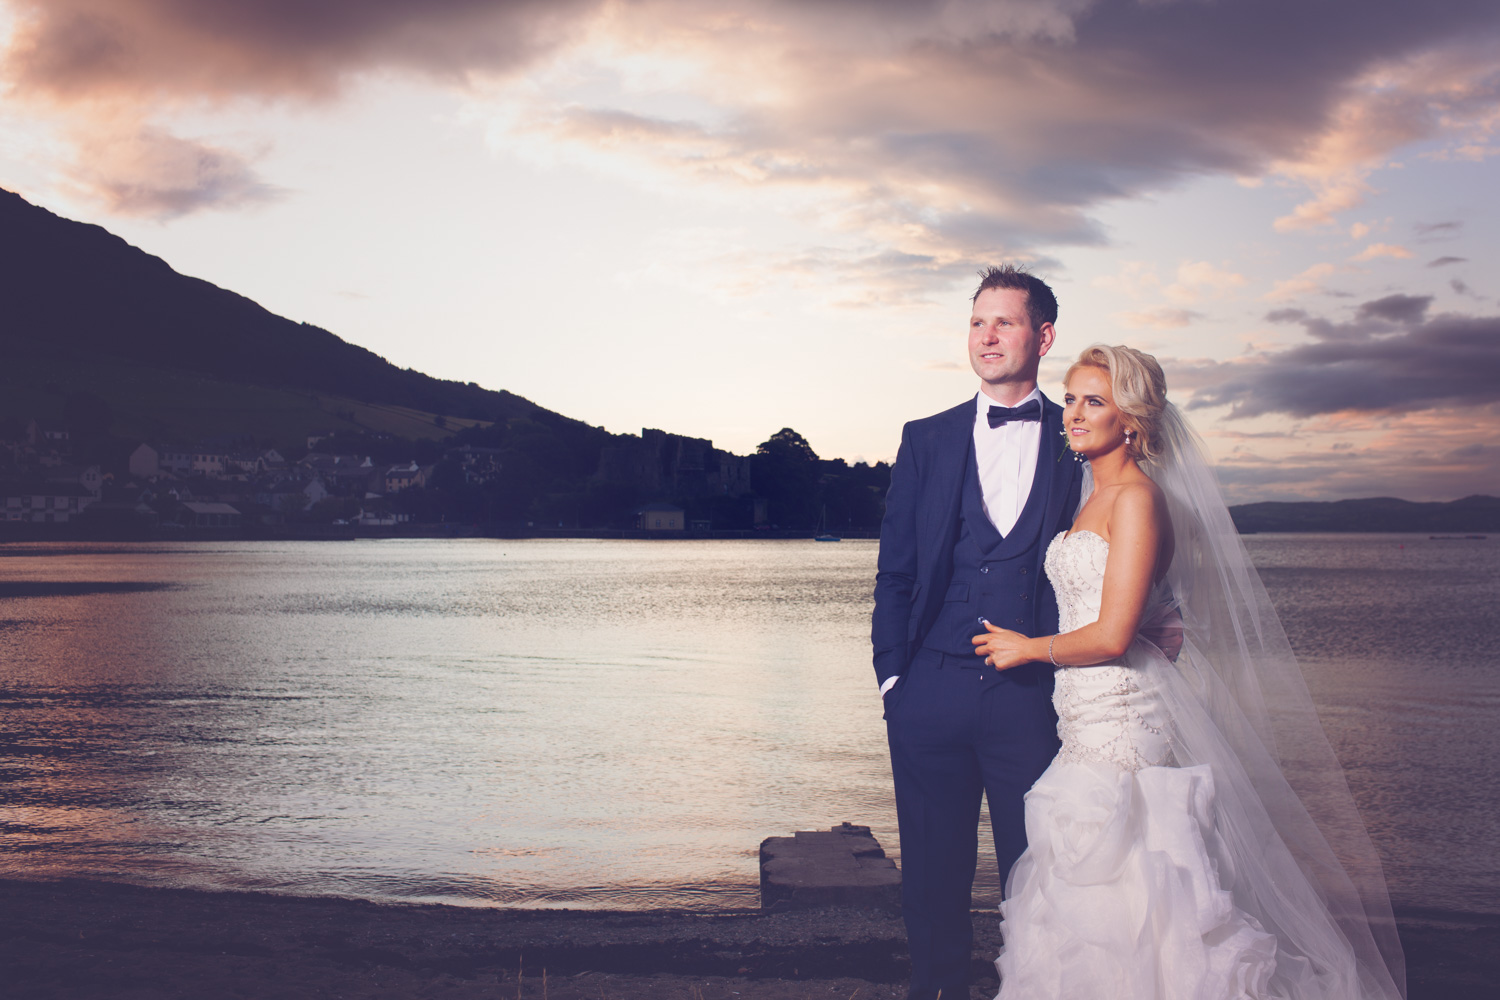 Mark_Barnes_wedding_photographer_Northern_Ireland_Wedding_photography_Carlingford_Four_Seasons_Wedding-49.jpg